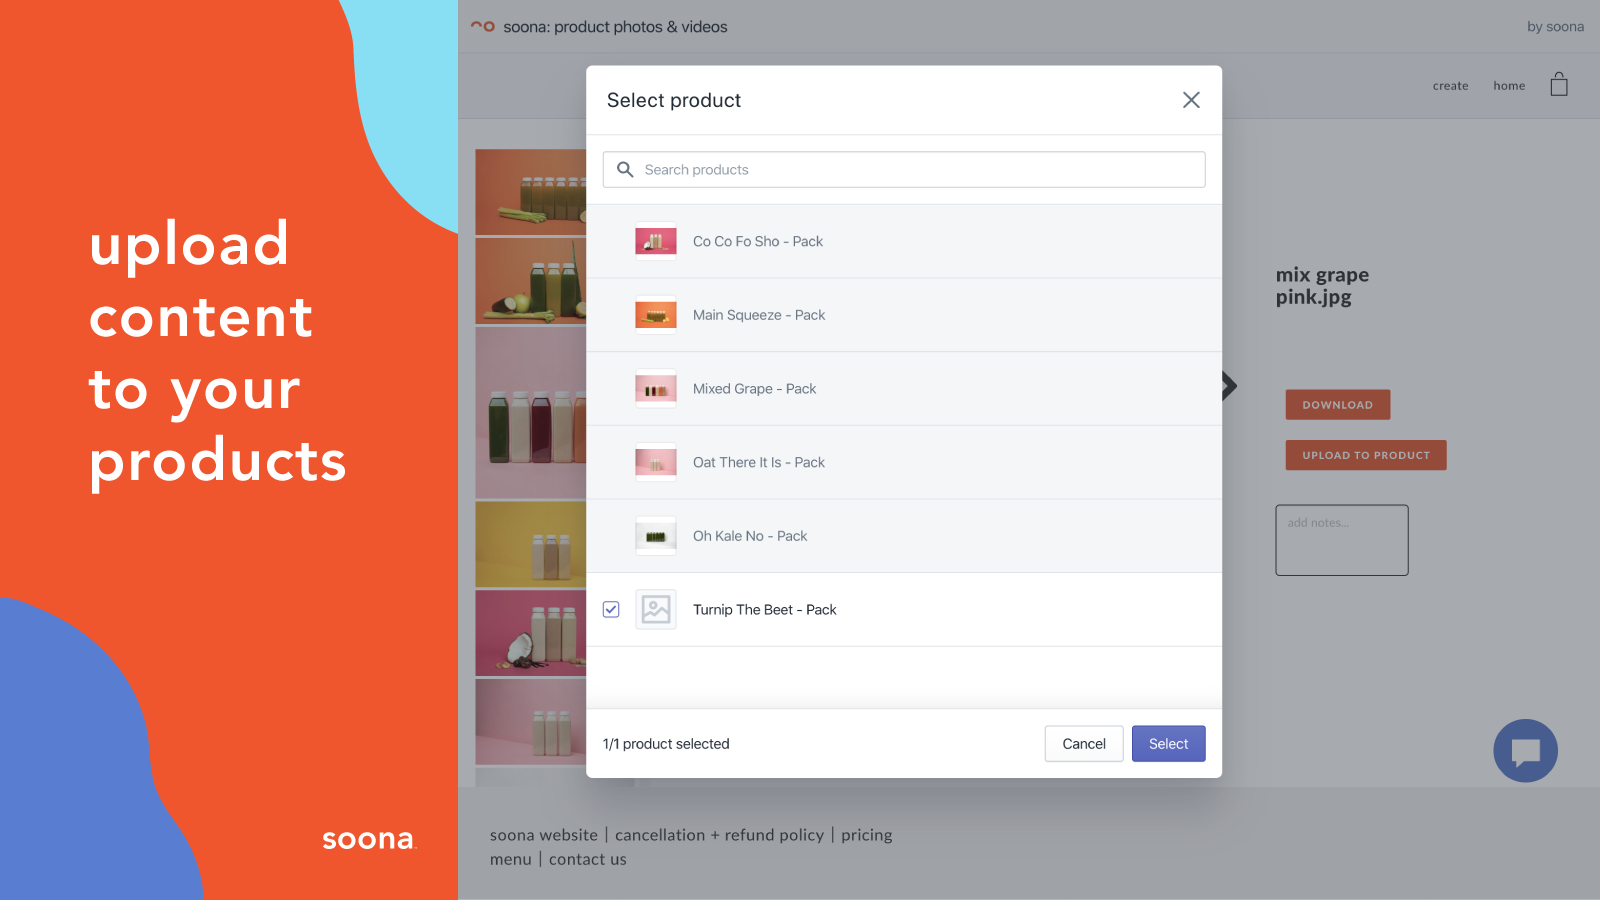 upload photos and videos to your products